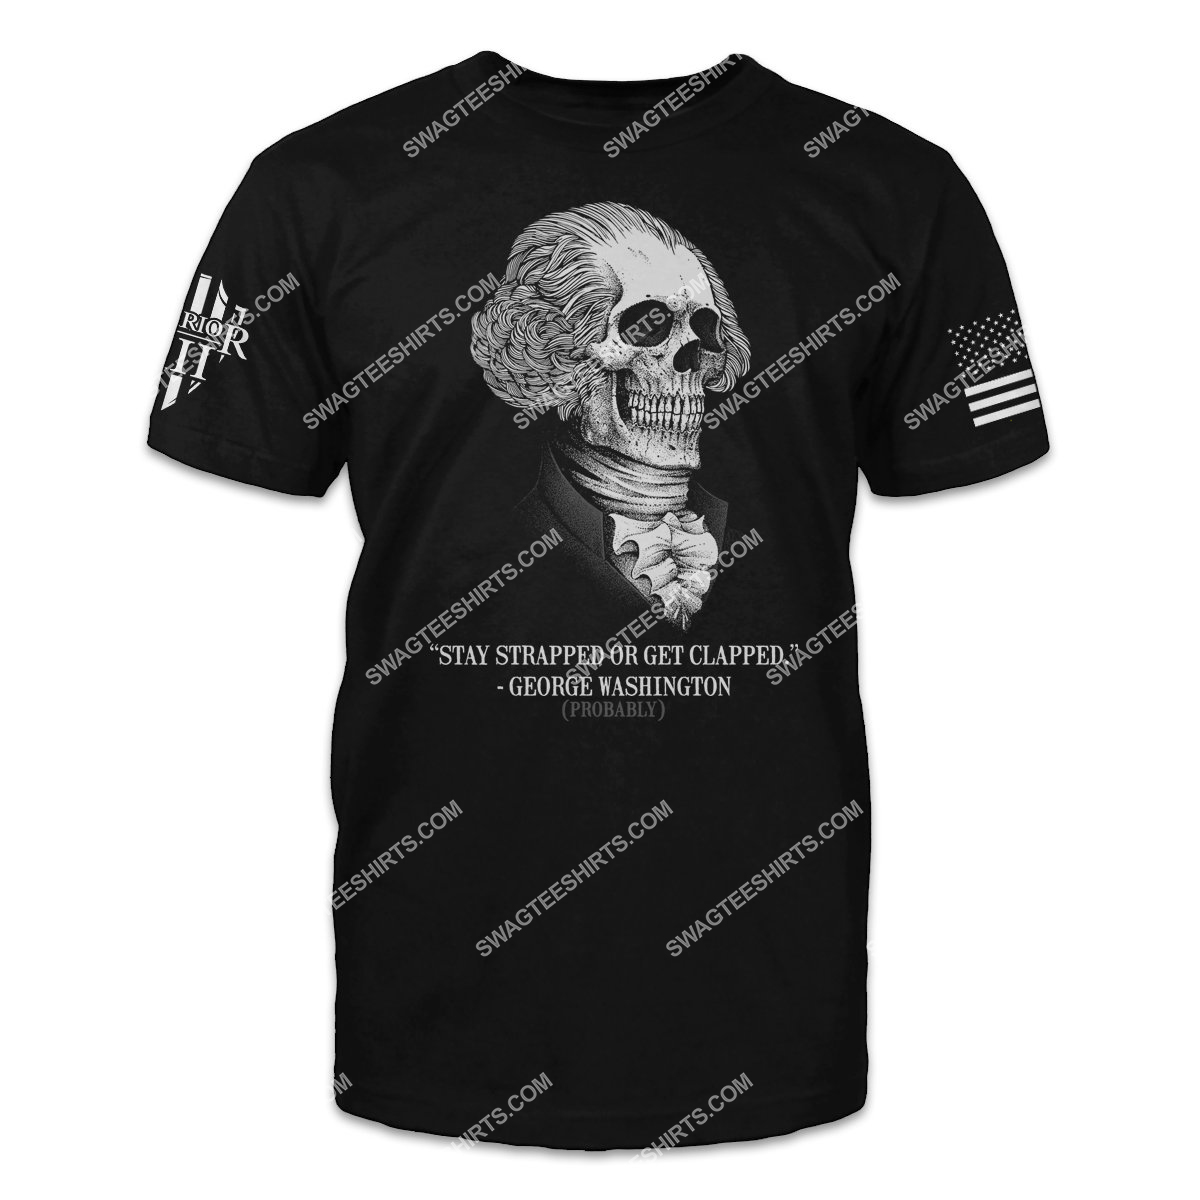 stay strapped or get clapped george washington shirt 1 - Copy (2)